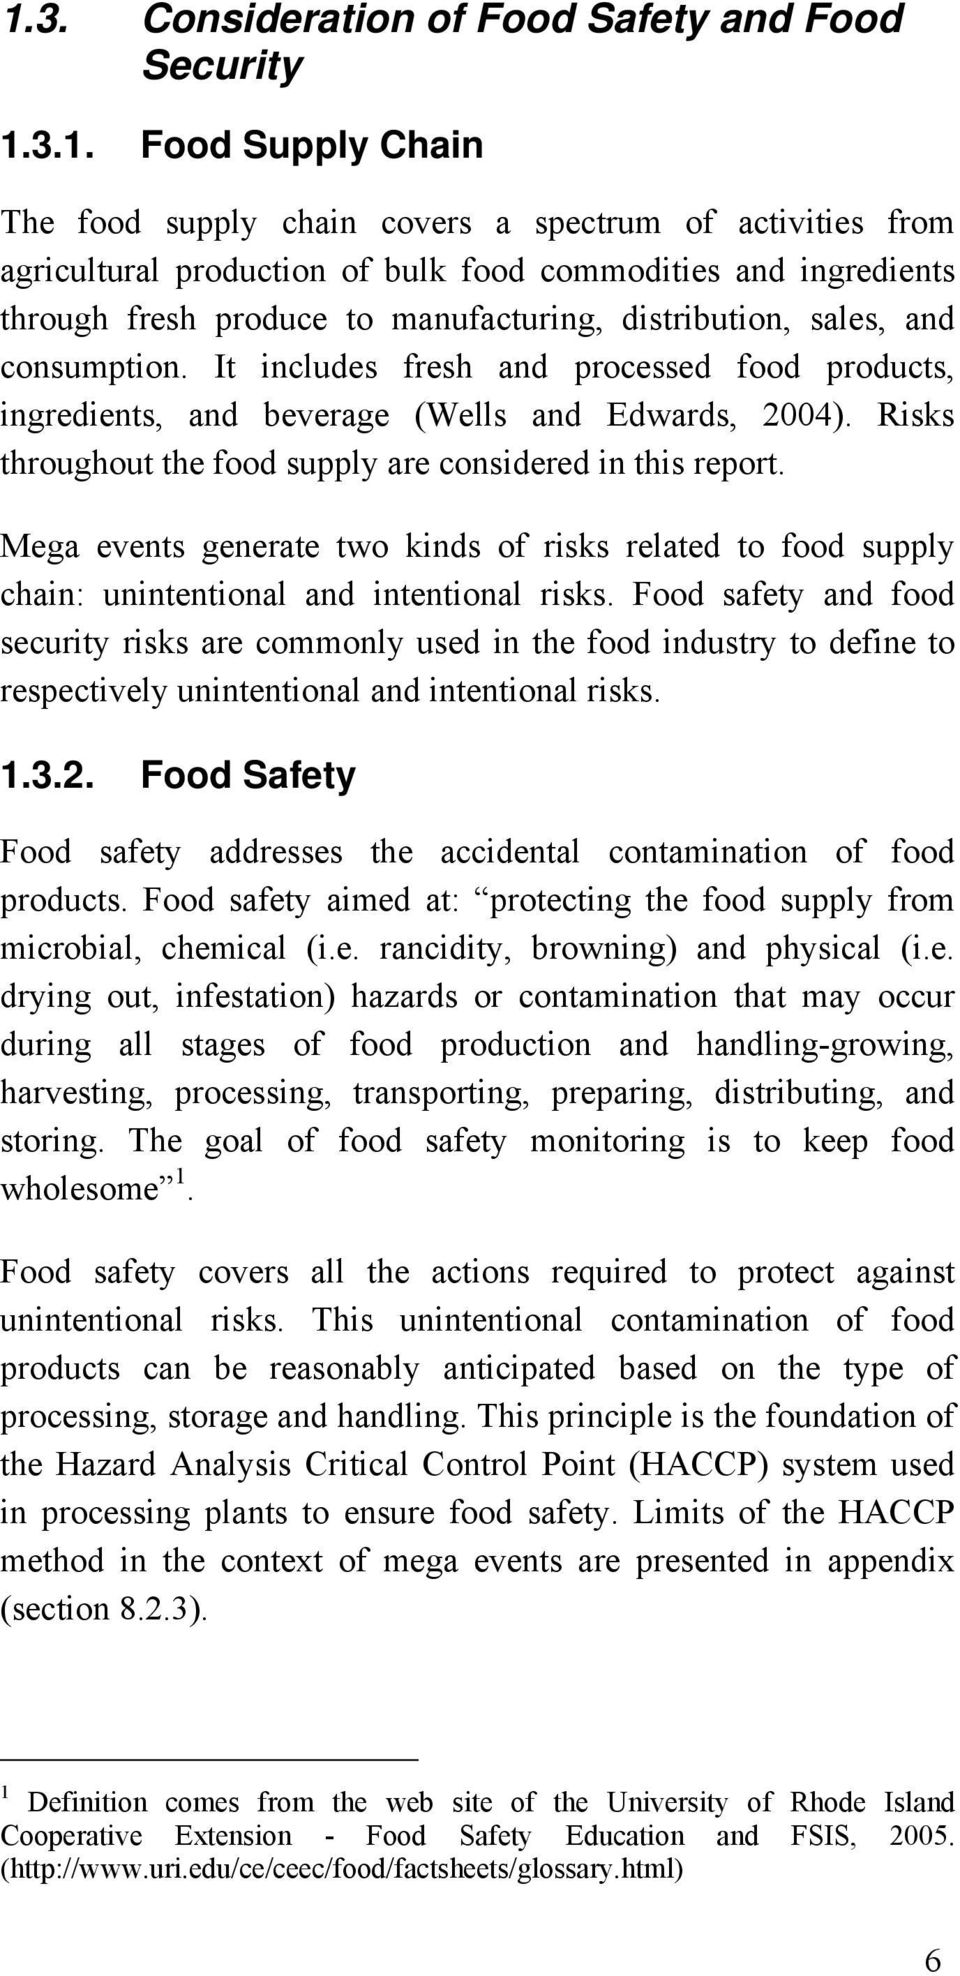 Risks throughout the food supply are considered in this report. Mega events generate two kinds of risks related to food supply chain: unintentional and intentional risks.